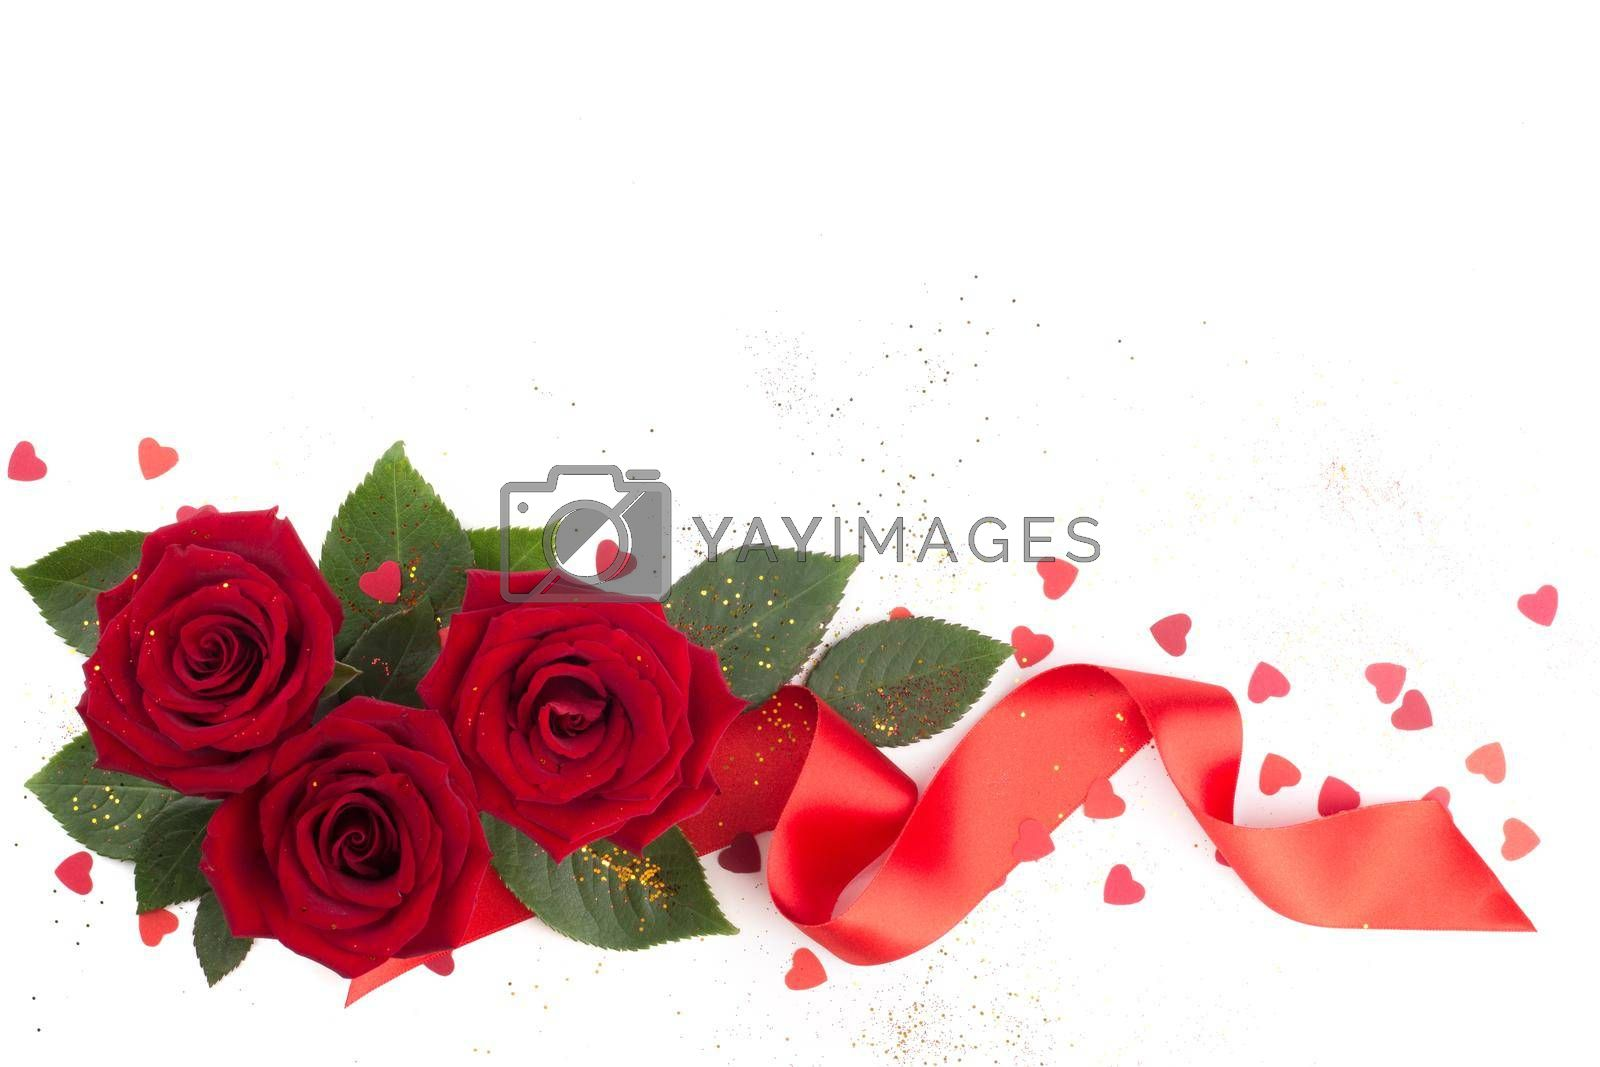 Red rose flowers leaves hearts and ribbon arrangement isolated on white background, top view, design element for Valentines day